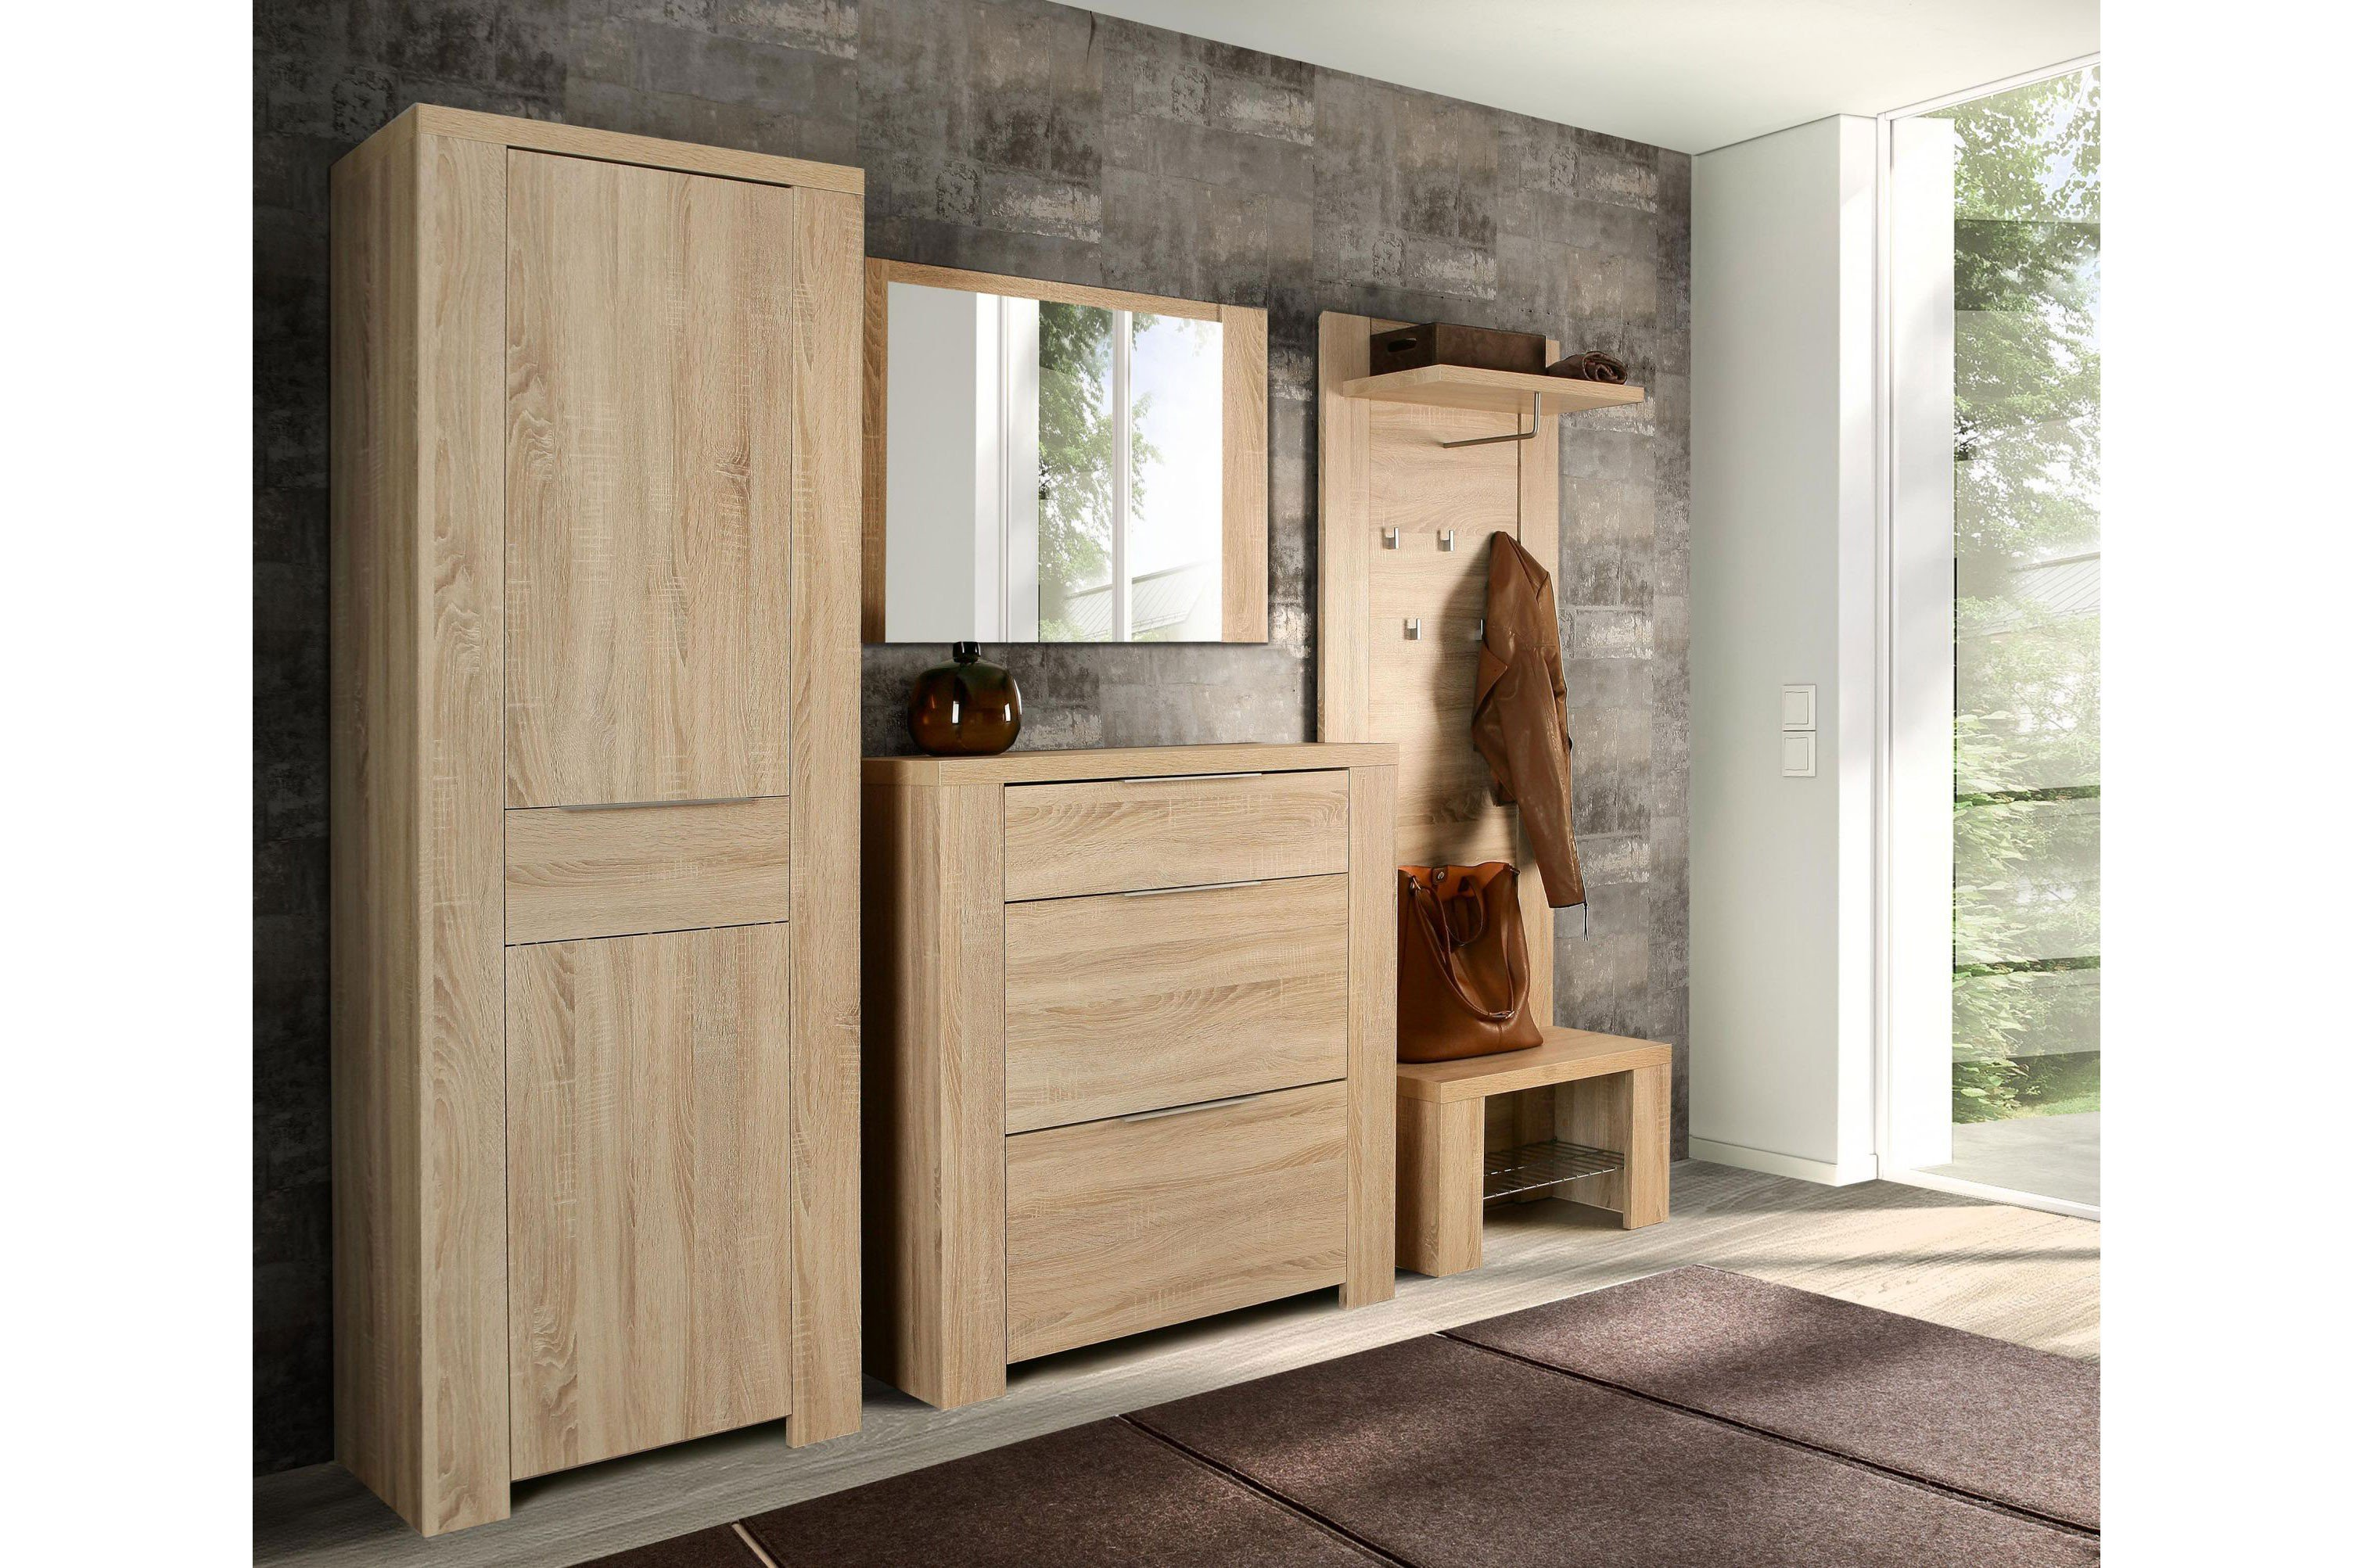 forte garderobe calpe sonoma eiche m bel letz ihr online shop. Black Bedroom Furniture Sets. Home Design Ideas